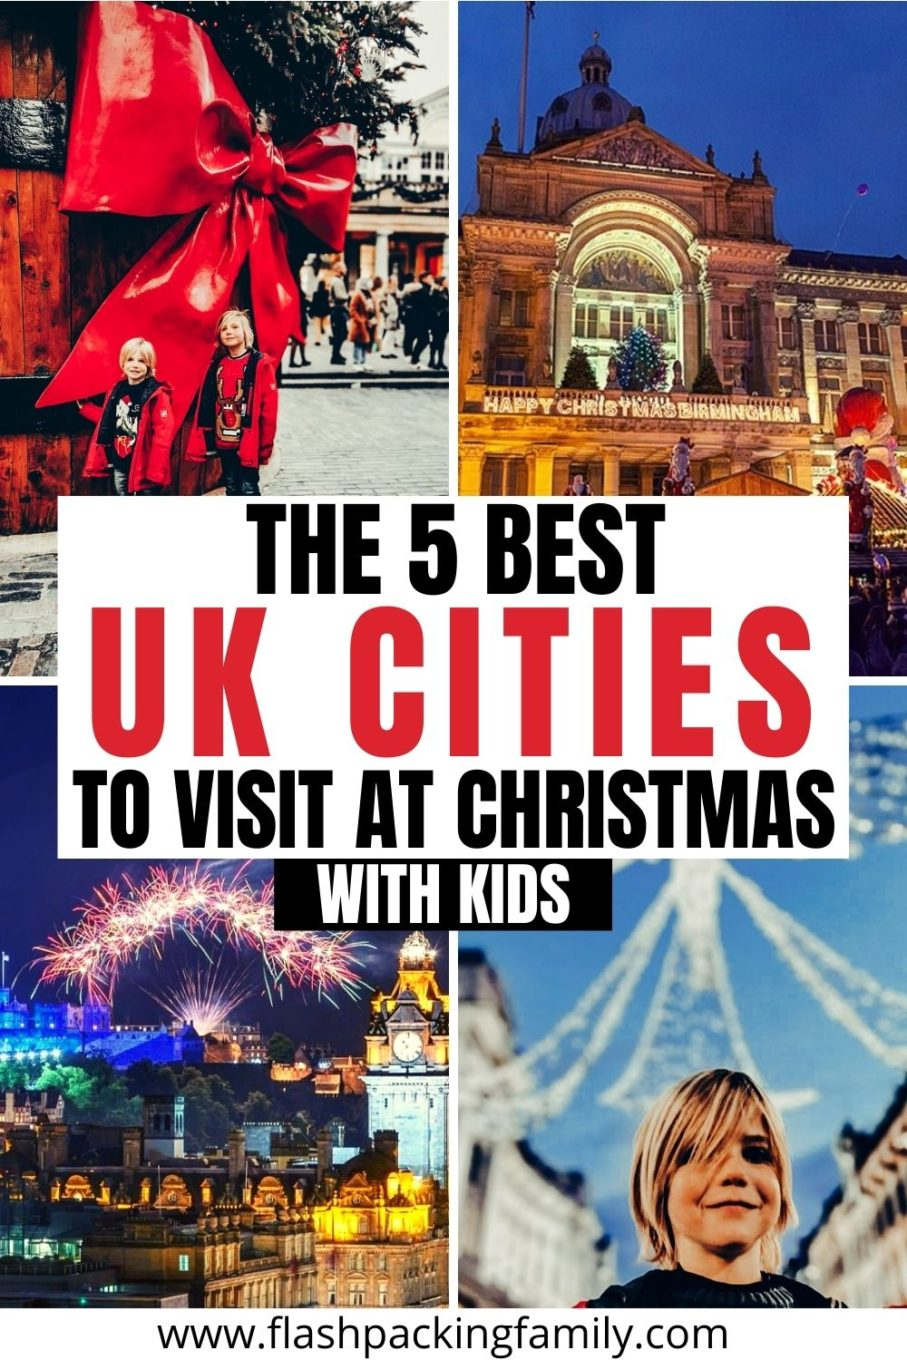 The 5 Best UK Cities to Visit at Christmas with Kids.